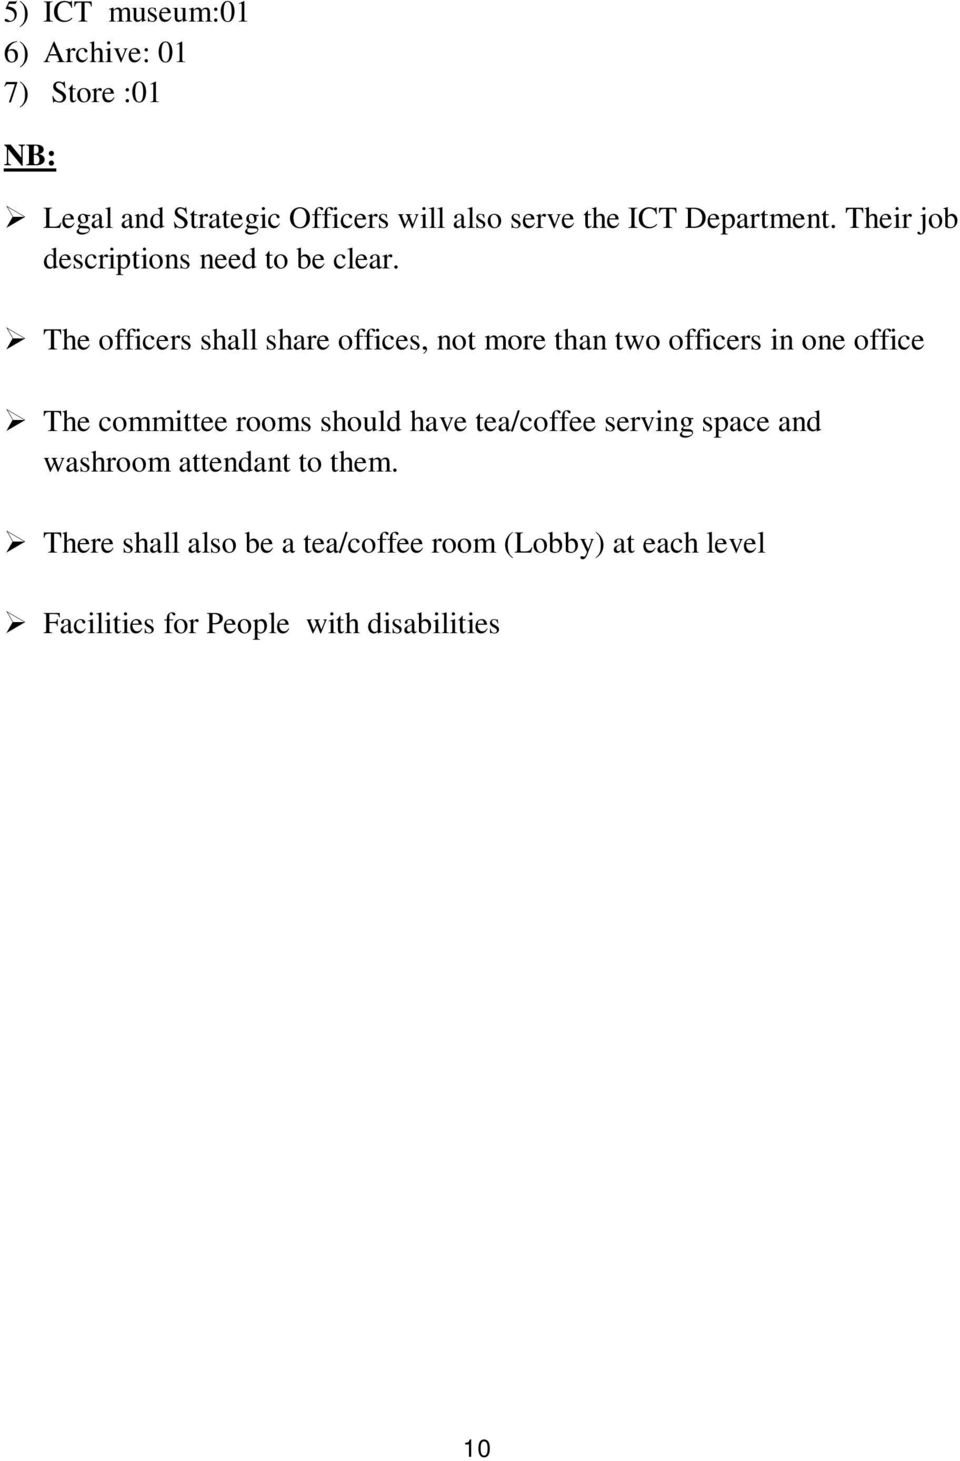 The officers shall share offices, not more than two officers in one office The committee rooms should